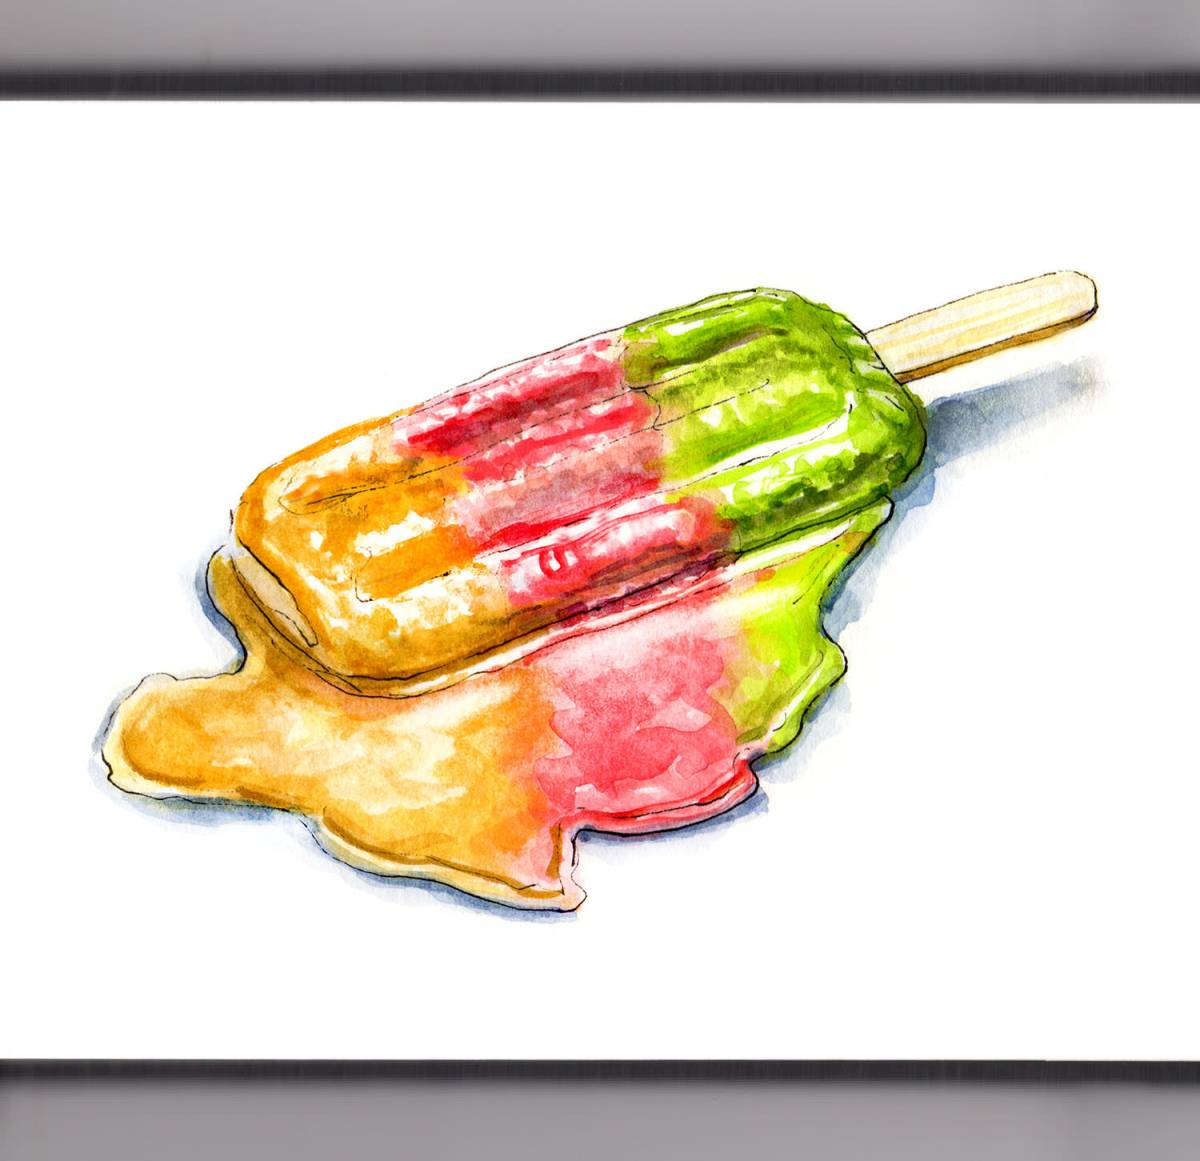 Day 25 - #WorldWatercolorGroup - Melting Popsicle multiple colors and flavors - #doodlewash